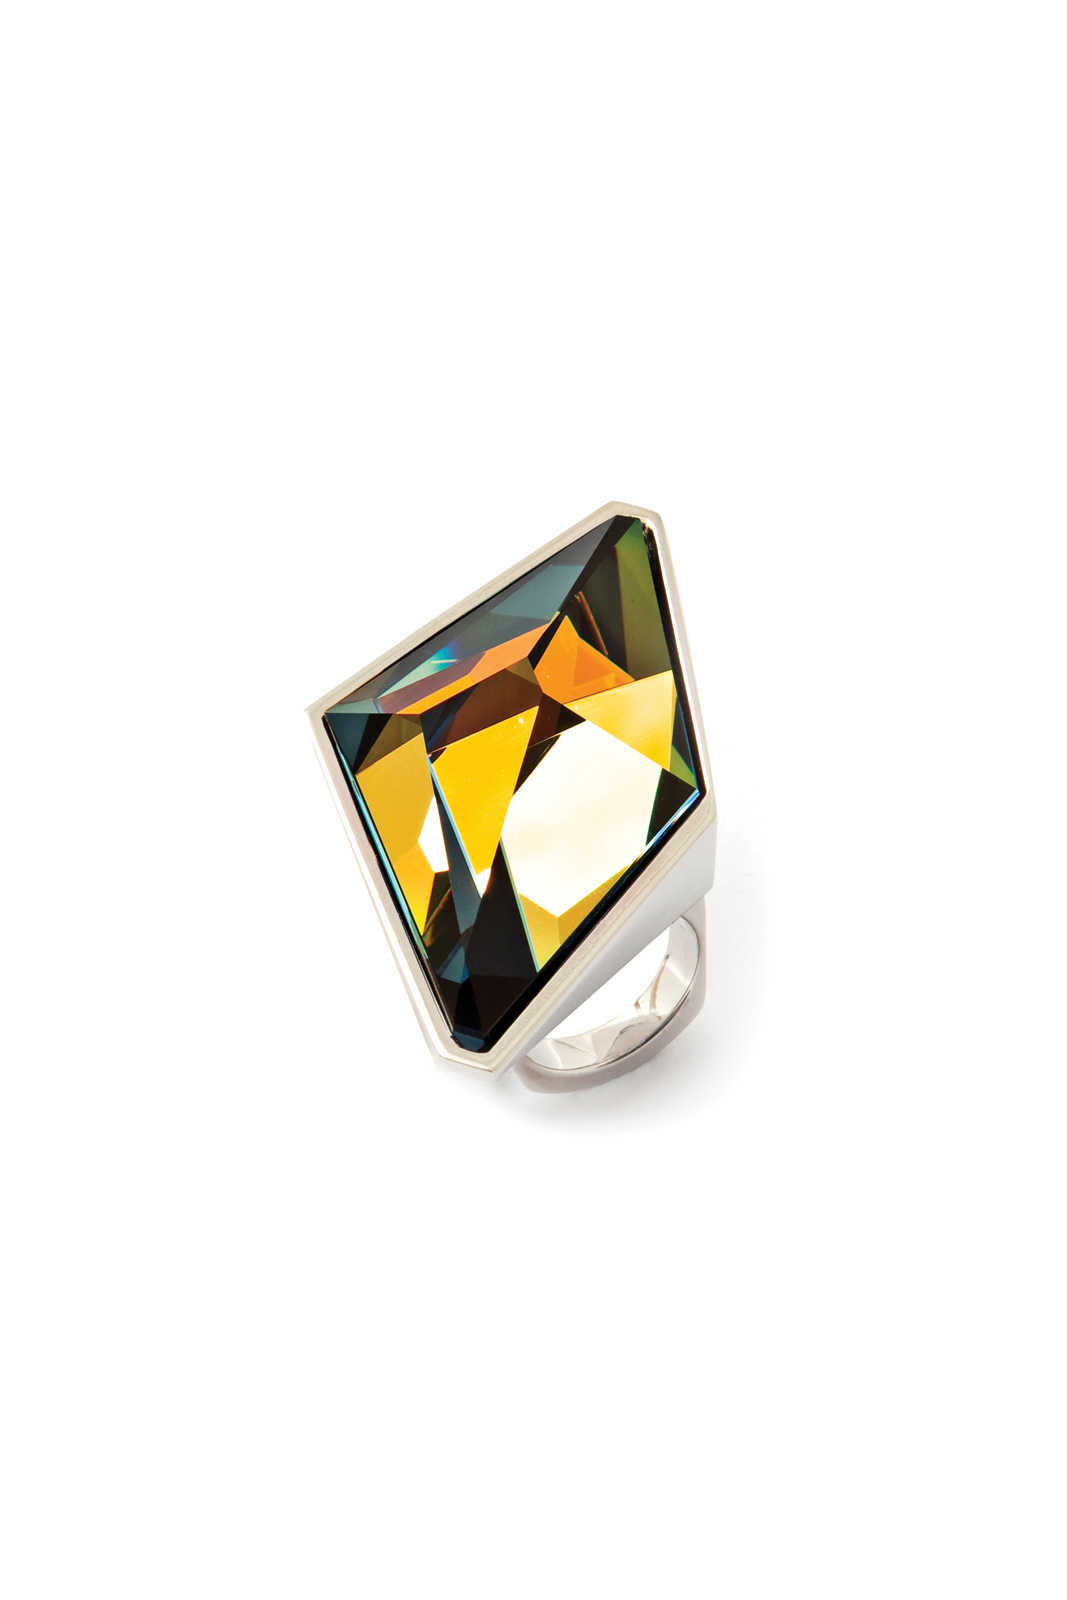 Kryptonite jewelry collection by Mojgan and Gisue Hariri